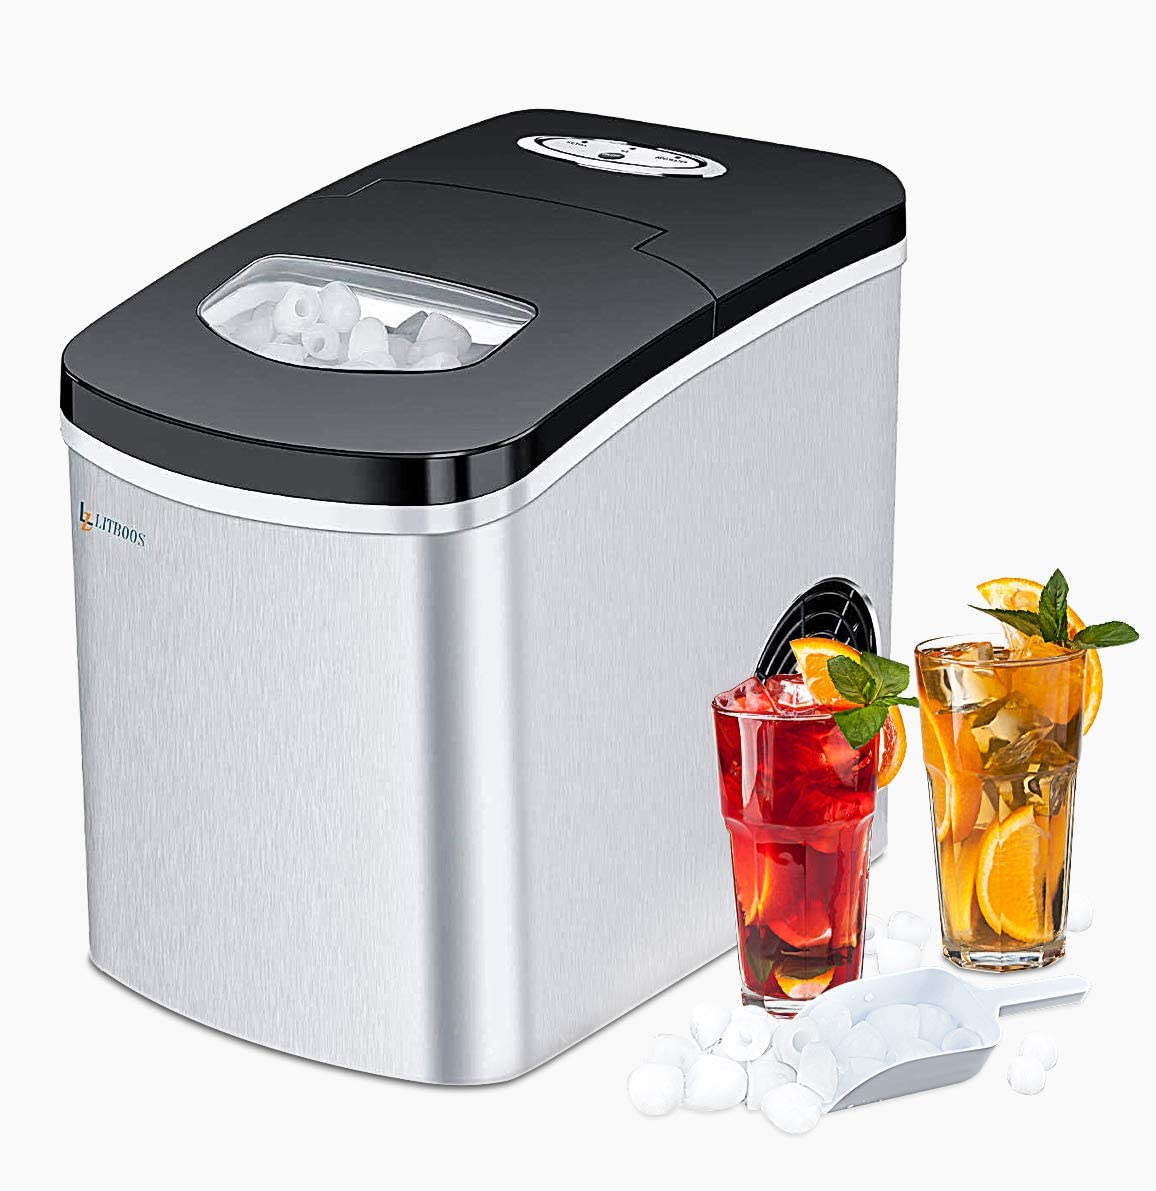 Litboos Portable Ice Maker Machine For Countertop 9 Bullet Ice Cube Ready In 7 9 Mins 26 Lbs 24h Production Electric Icemaker With Scoop And Basket Stainless Steel Appliances